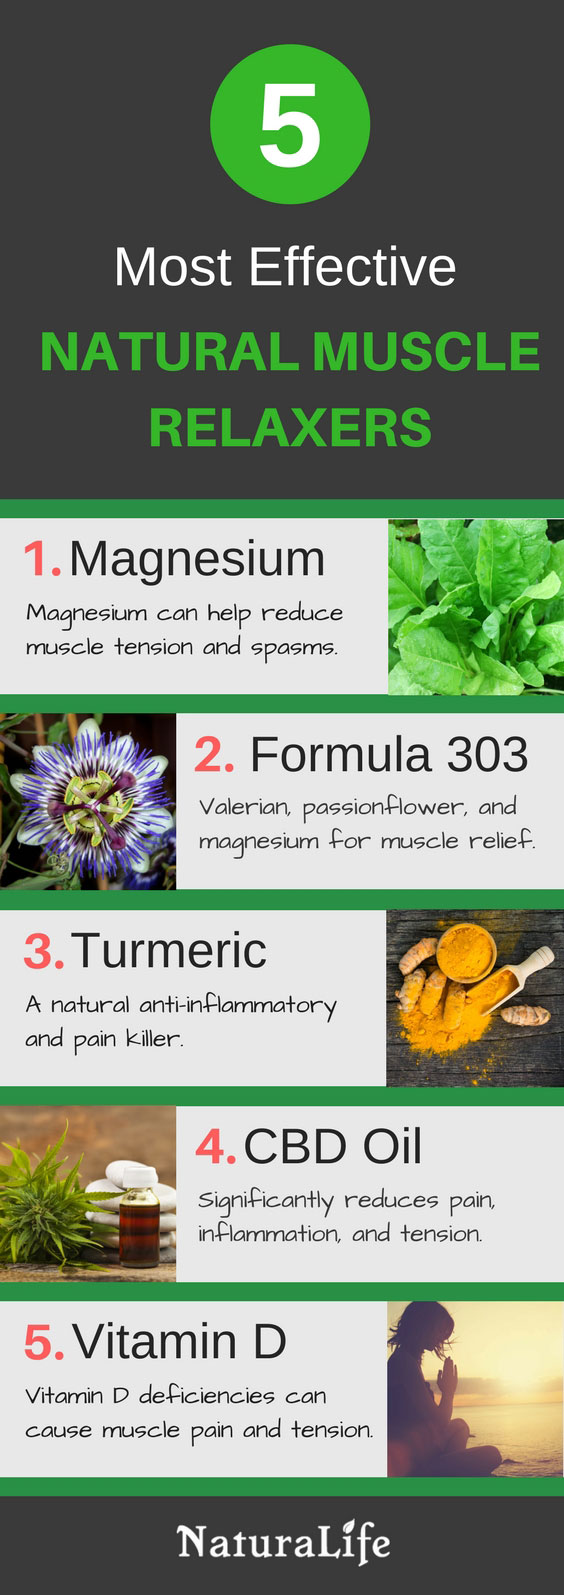 The Best Natural Muscle Relaxers Infographic